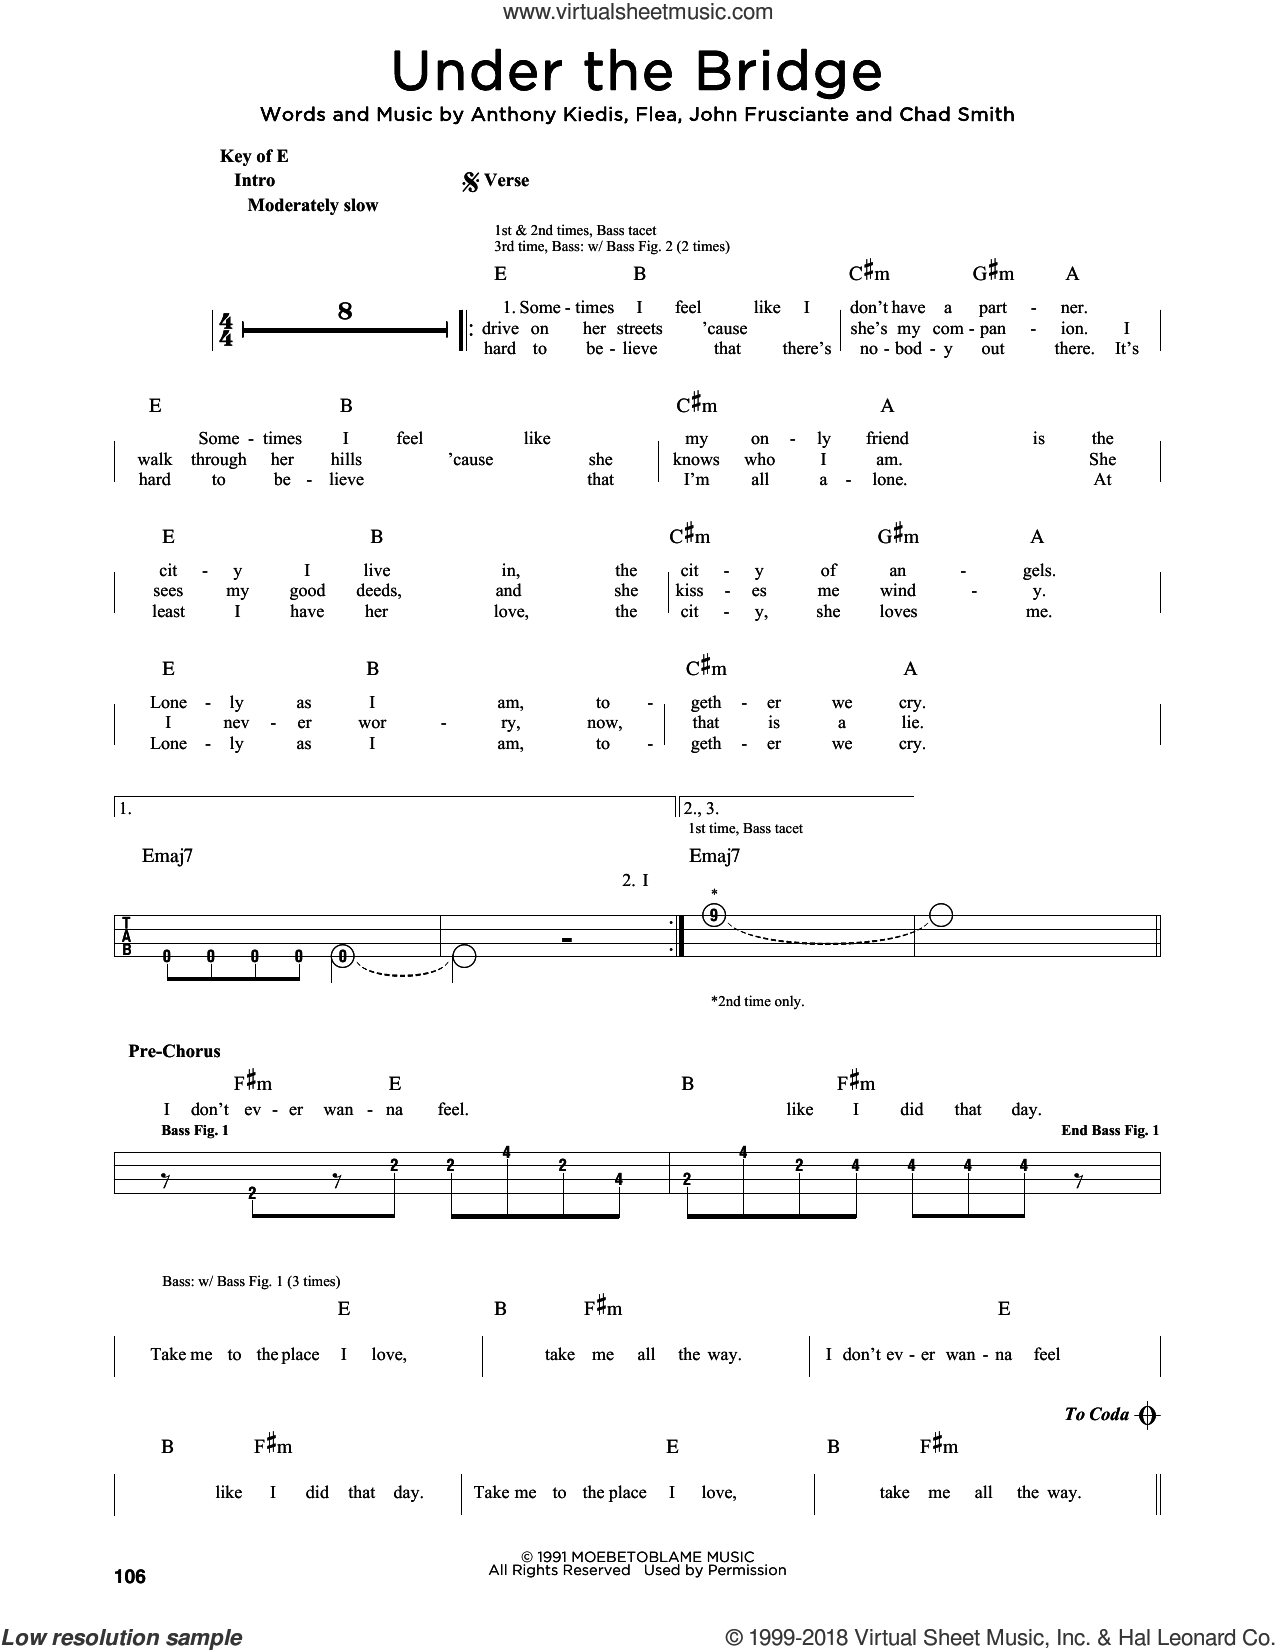 Under The Bridge sheet music for bass solo by Red Hot Chili Peppers, Anthony Kiedis, Chad Smith, Flea and John Frusciante, intermediate skill level